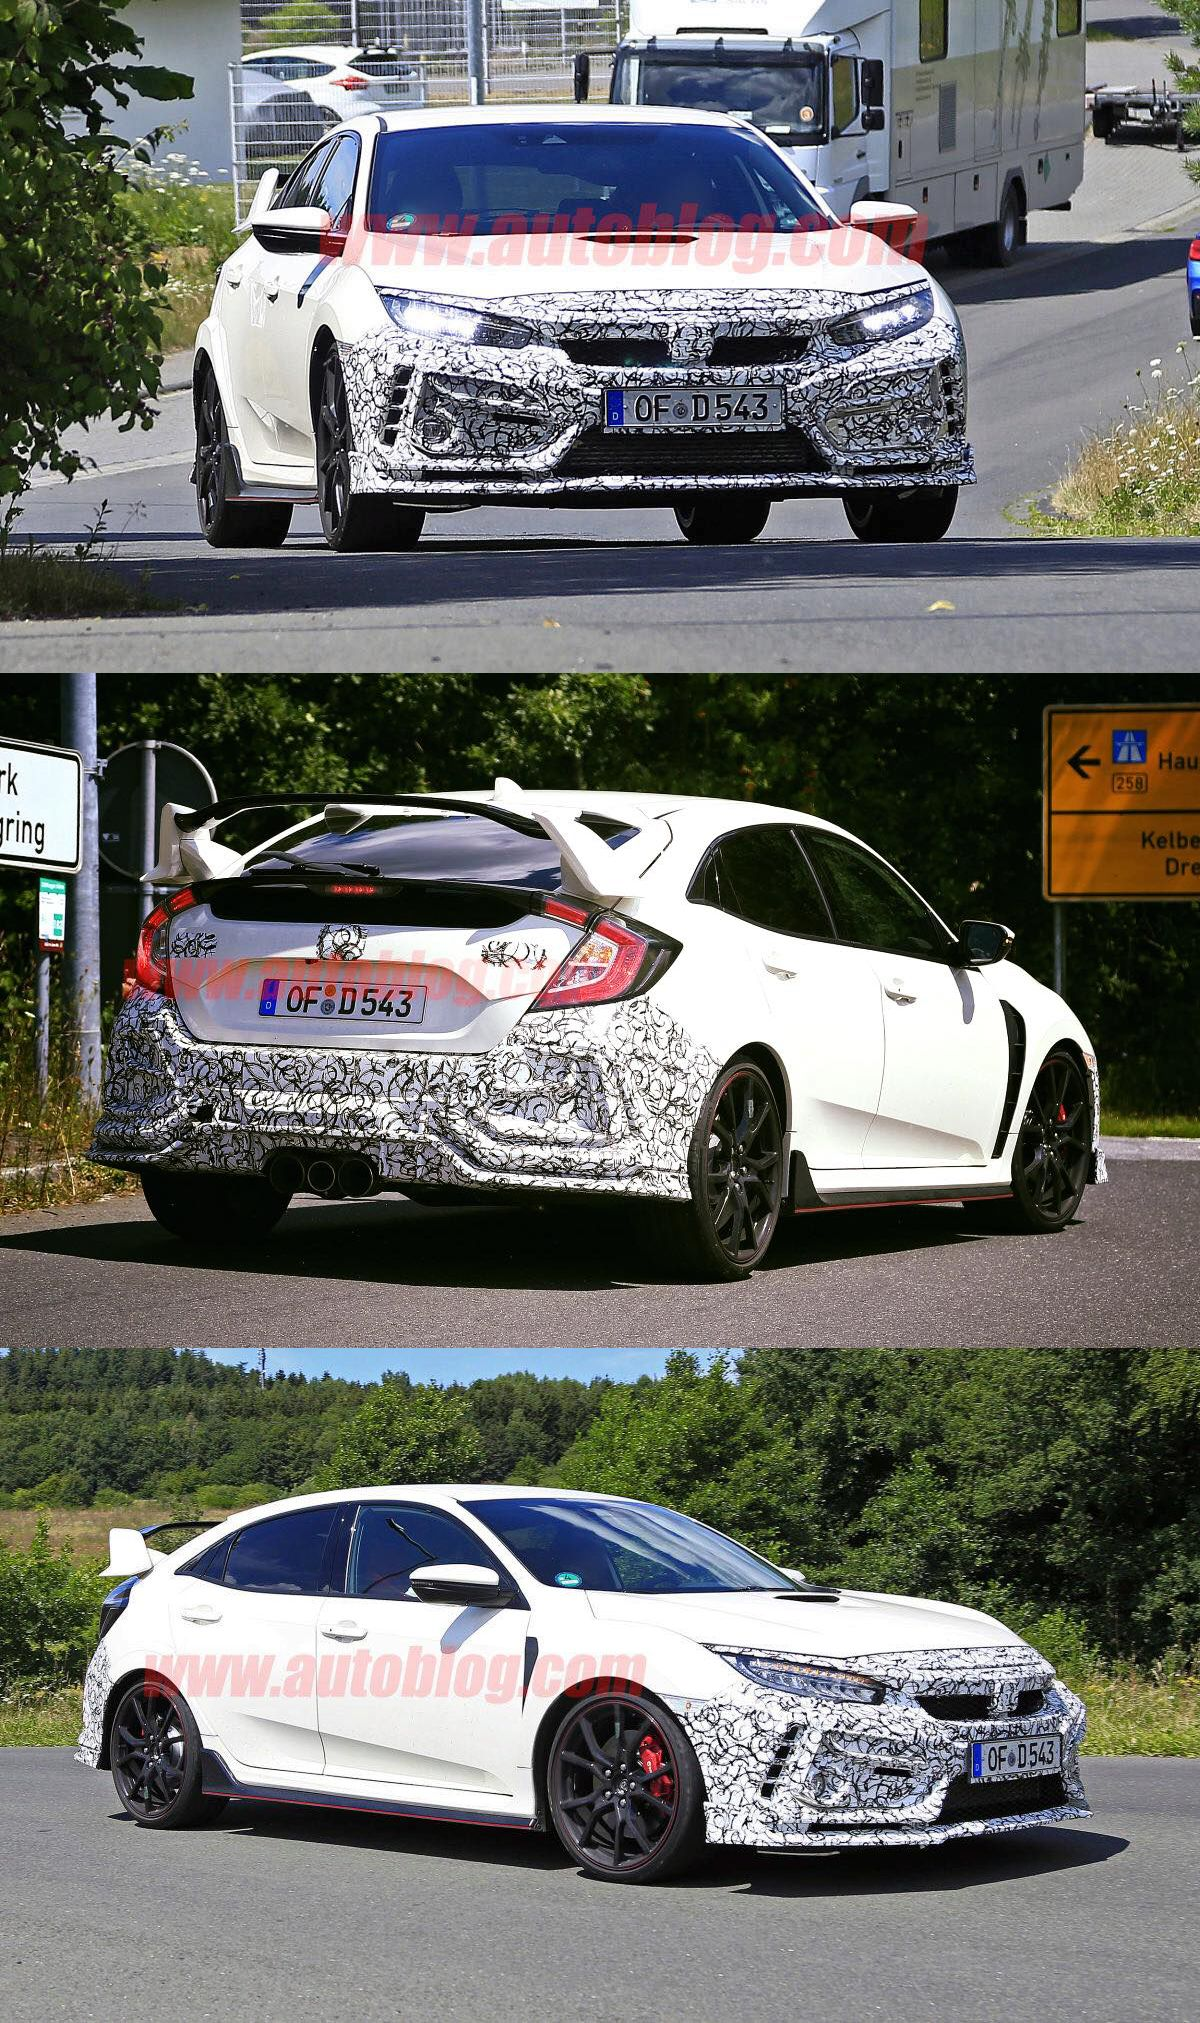 Here Are Some Spy Shots Of The 2019 Honda Civic Typer R Looks Like We Are Gonna See Updated Front And Rear B Honda Civic For Sale New Honda Honda Civic Type